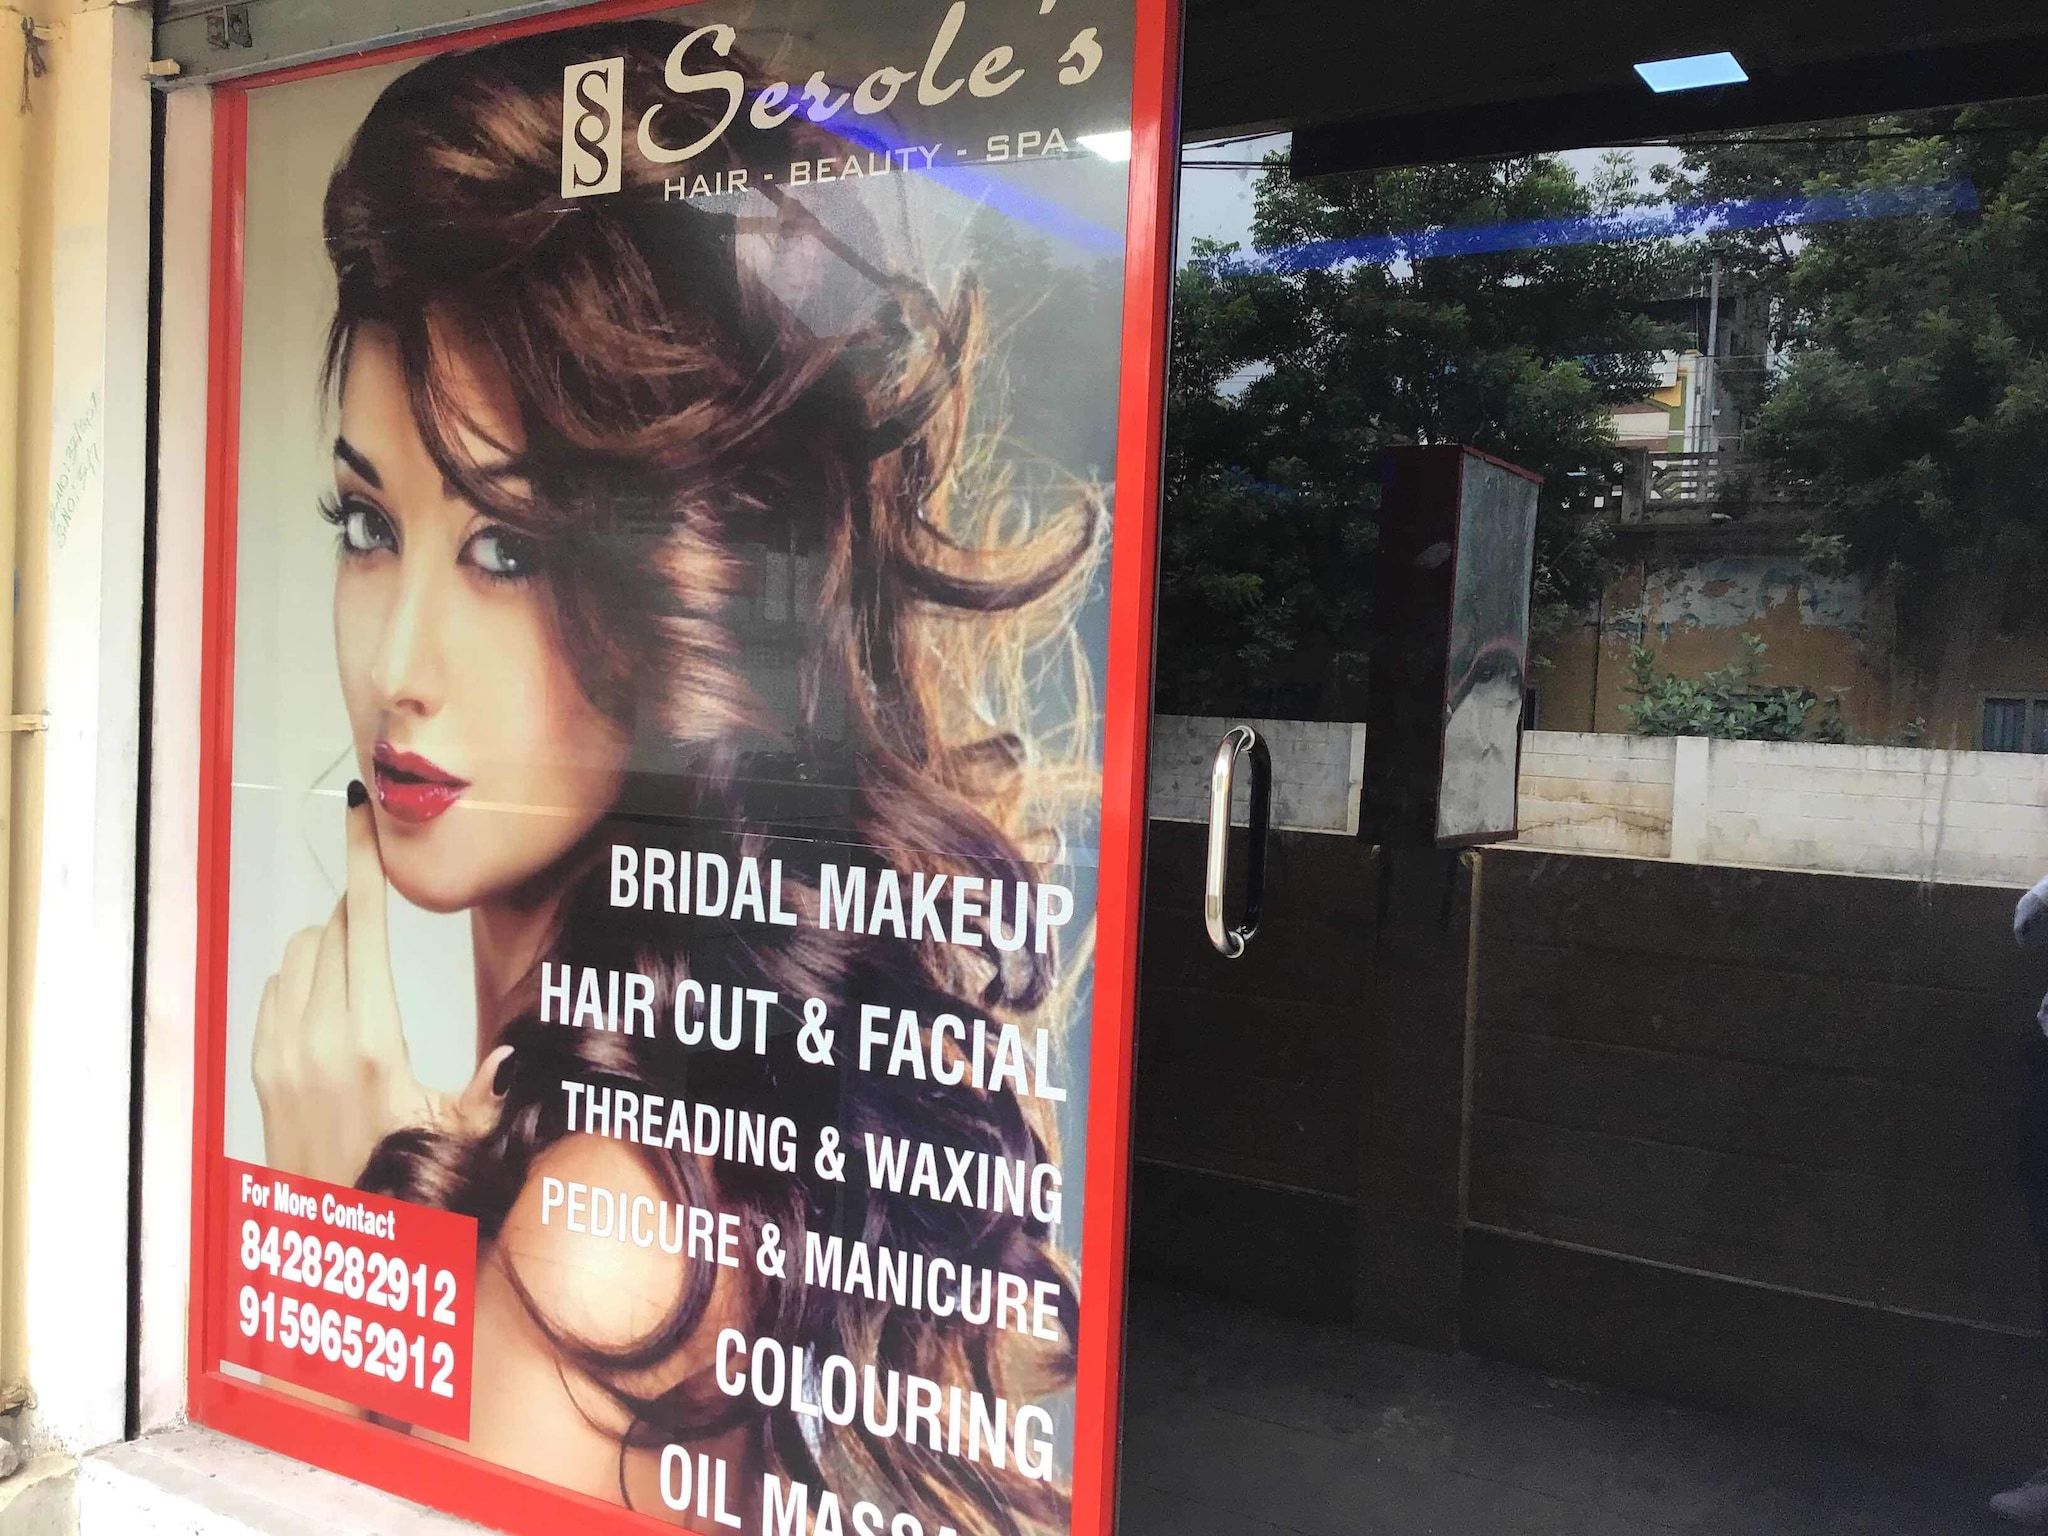 Top Hair Stylists in Tiruverambur, Trichy - Best Hairdressers - Justdial